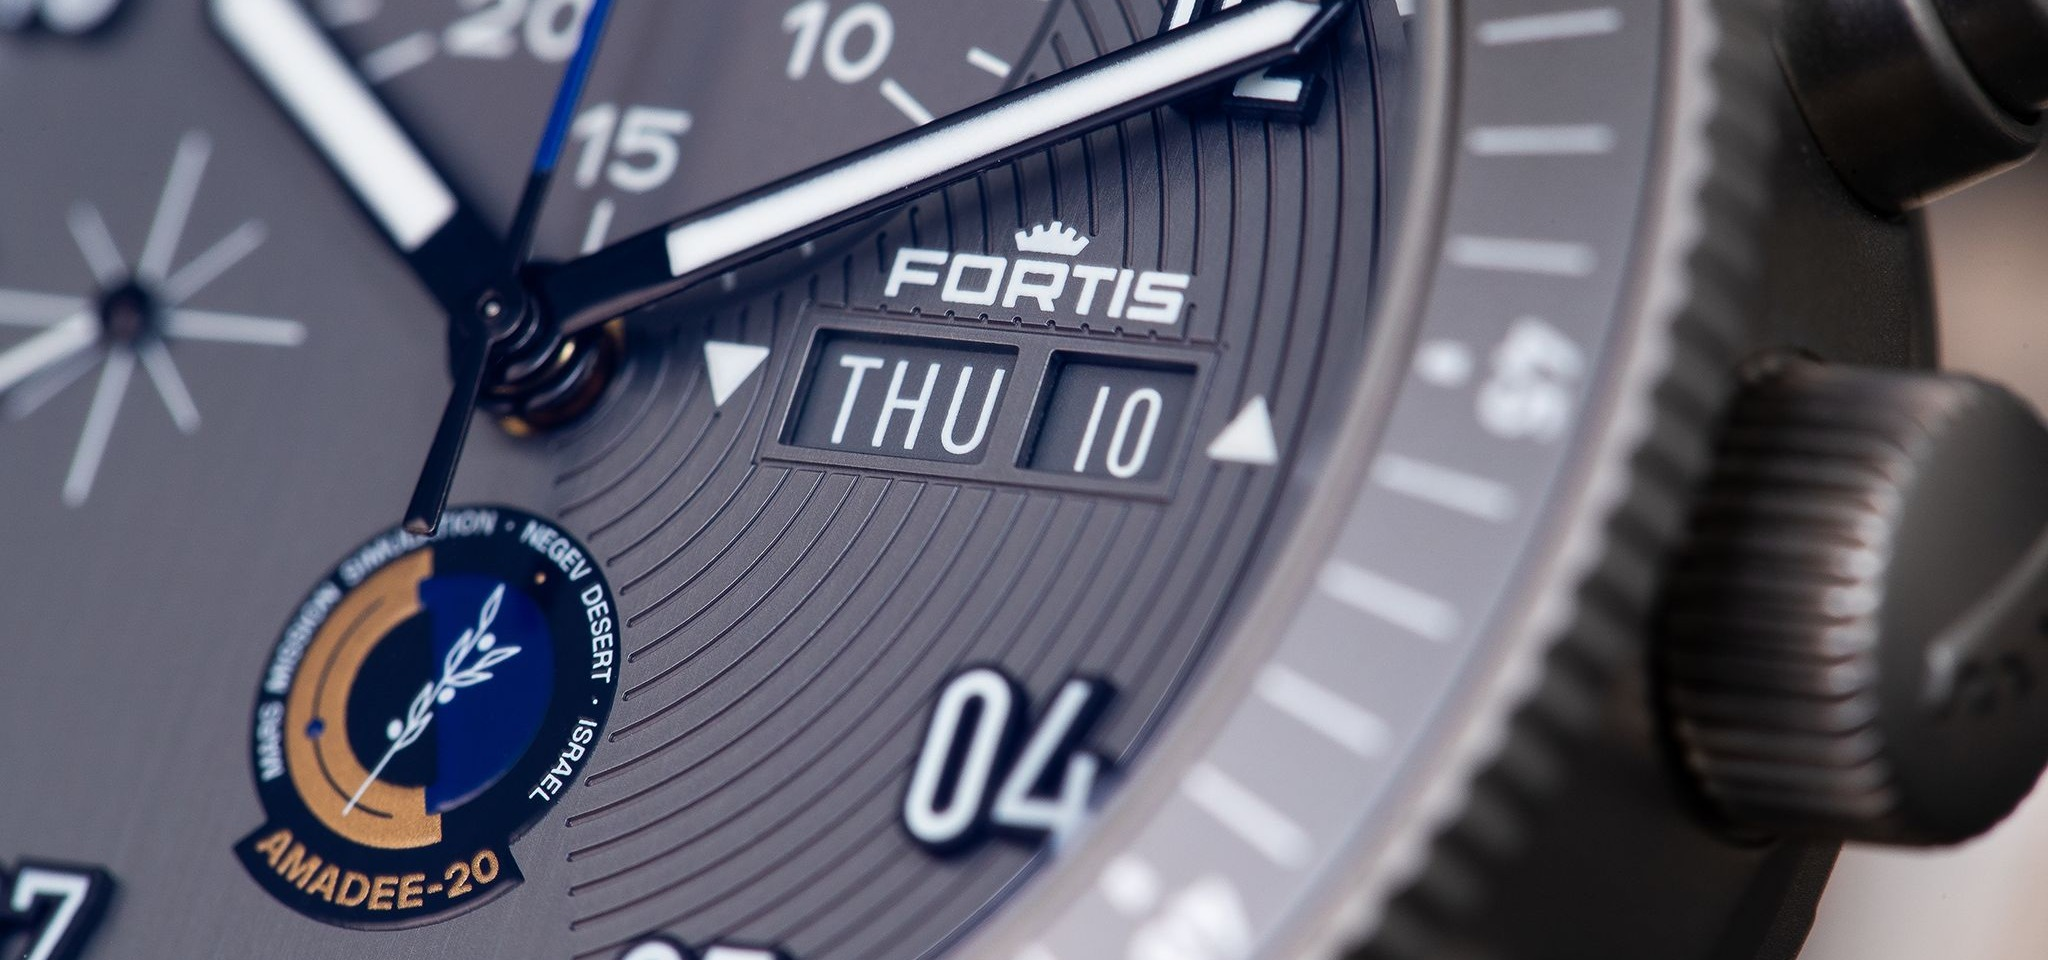 Why the Fortis Official Cosmonauts Chronograph AMADEE-20 is the perfect watch for future Martians